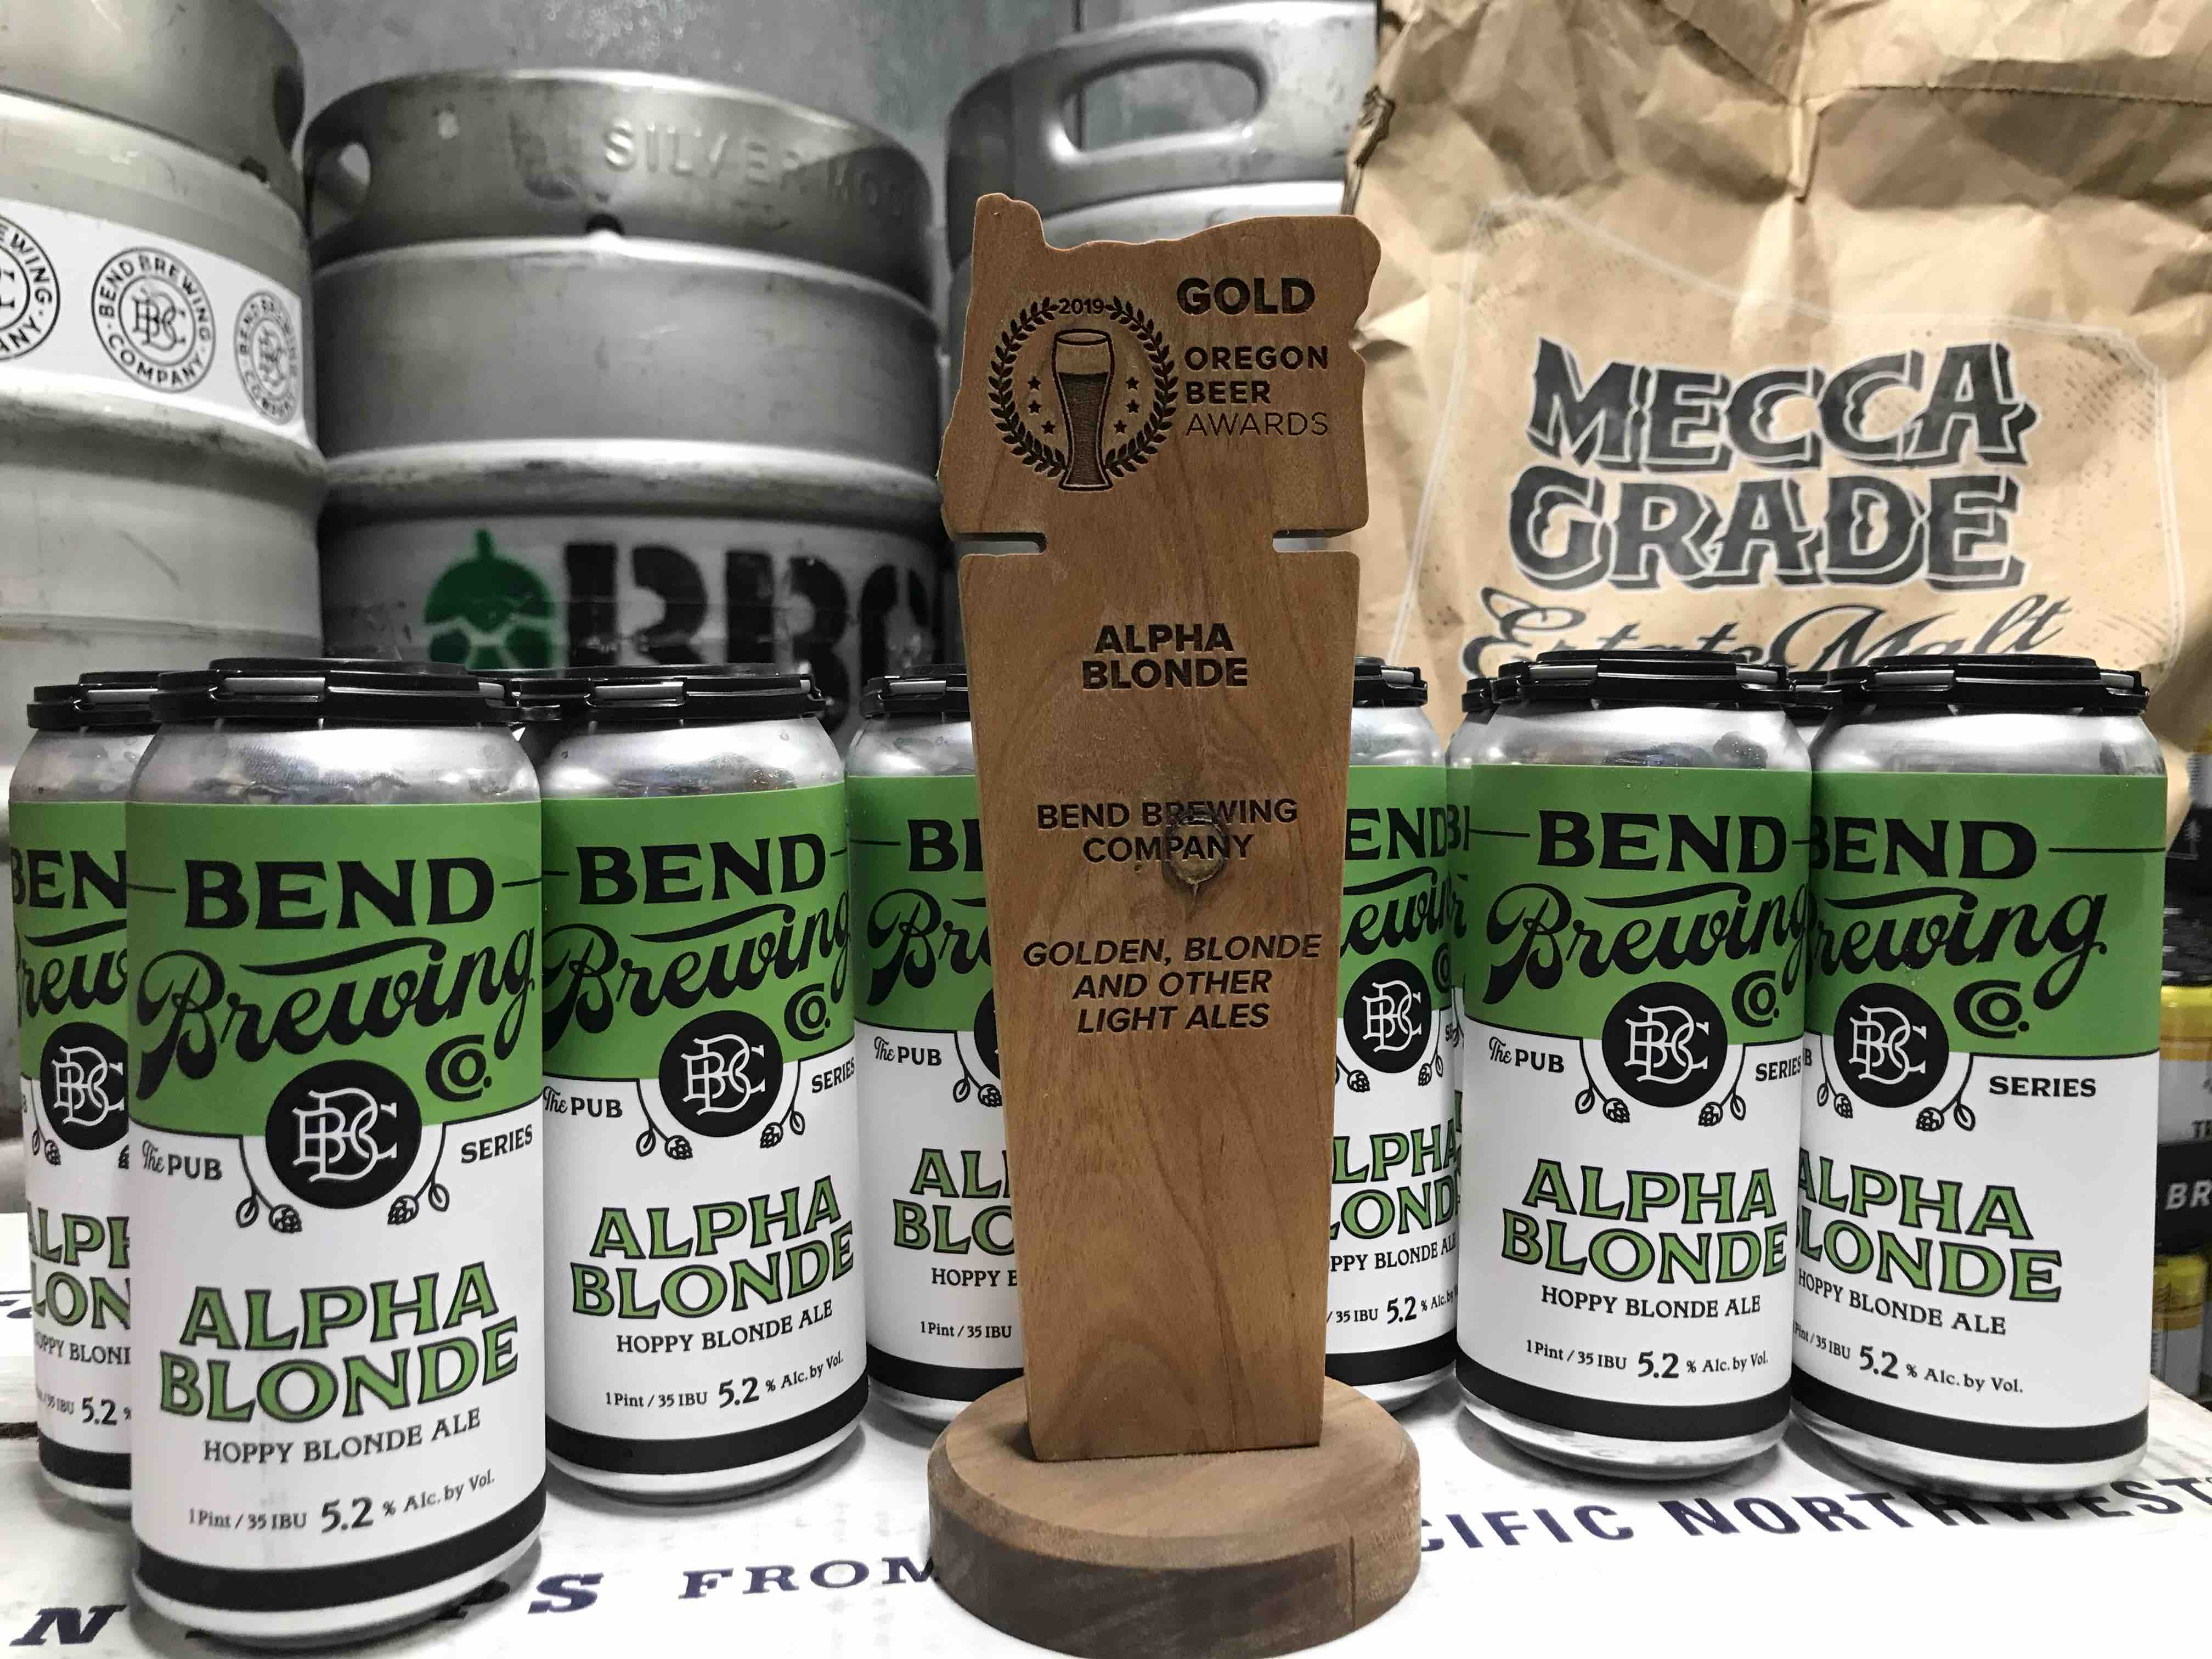 image of Alpha Blonde courtesy of Bend Brewing Co.